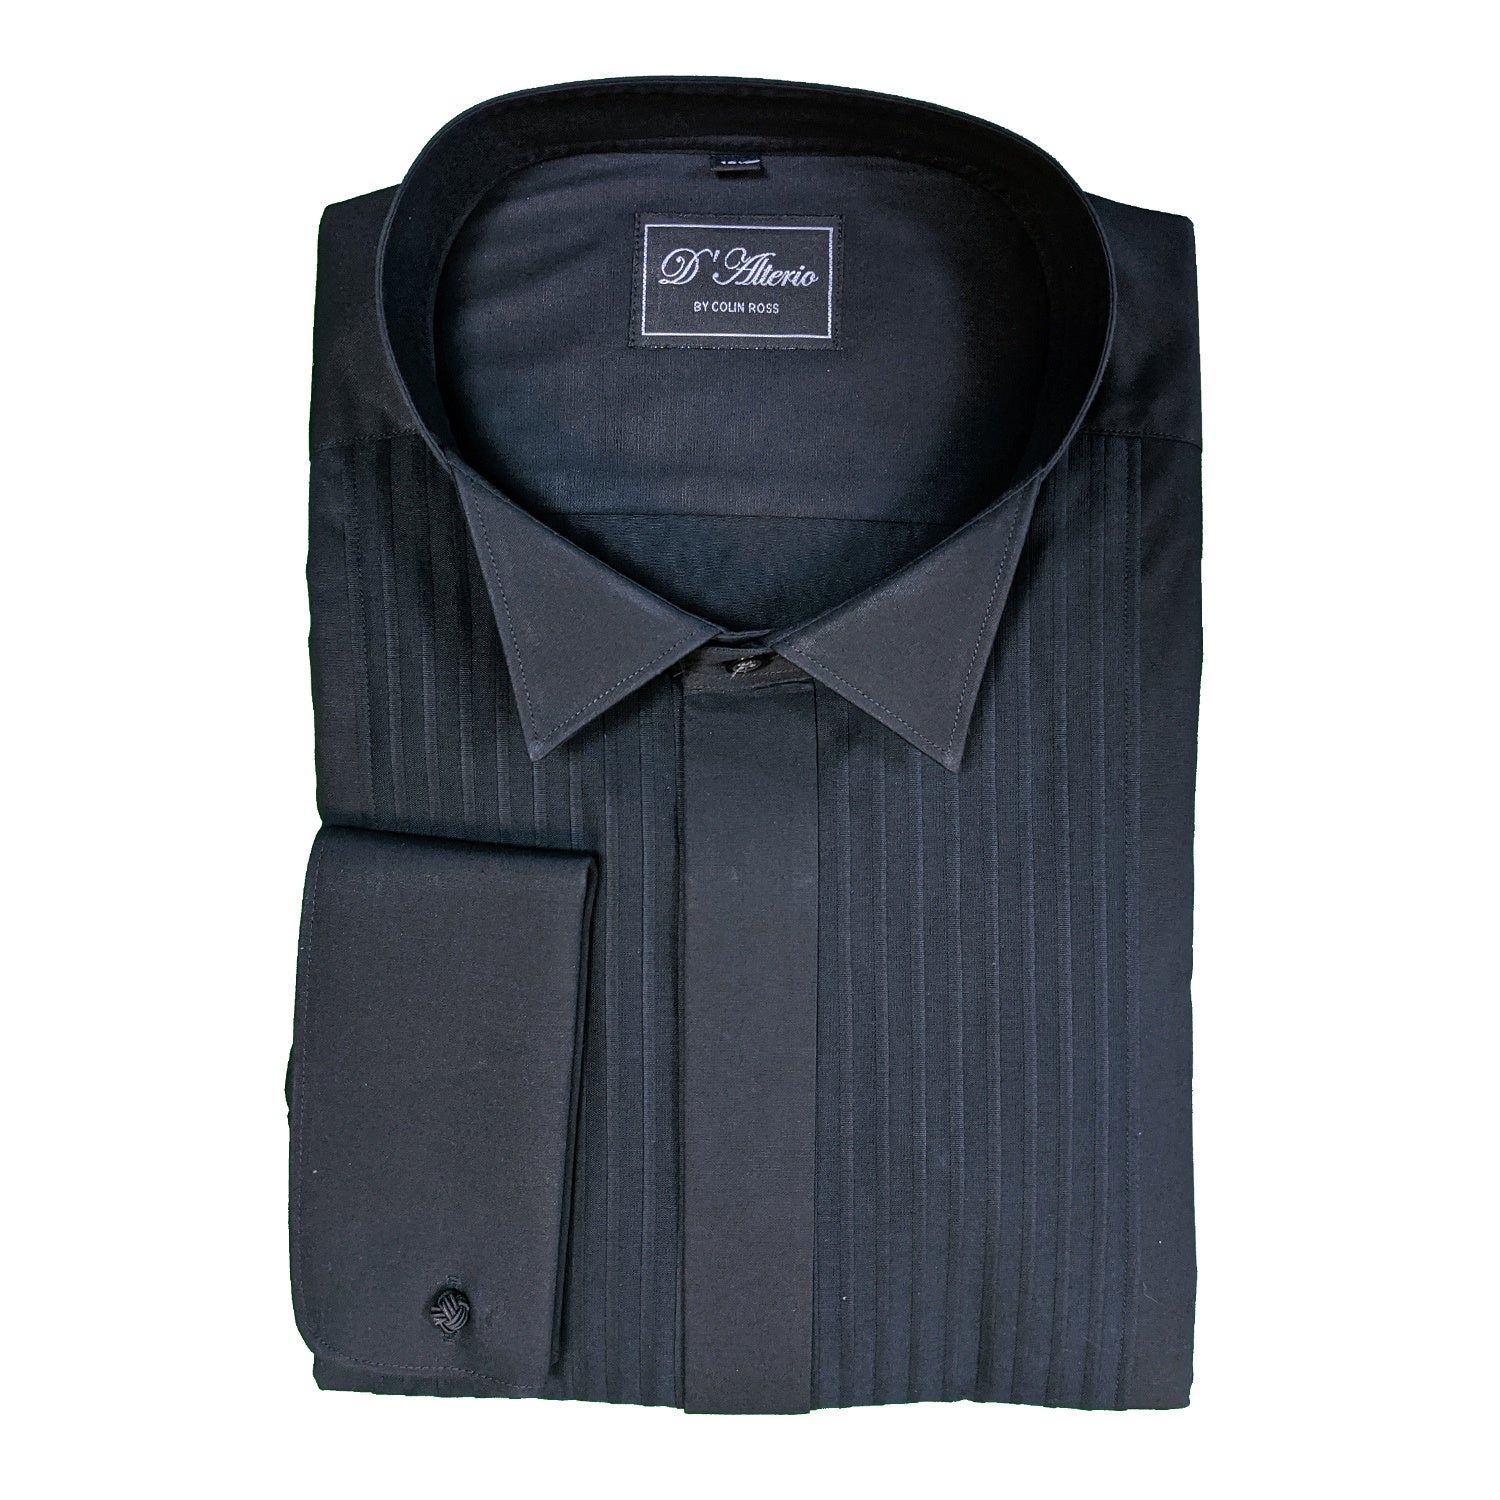 D'Alterio Wing Collar Dress Shirt - 21831 - Black 1